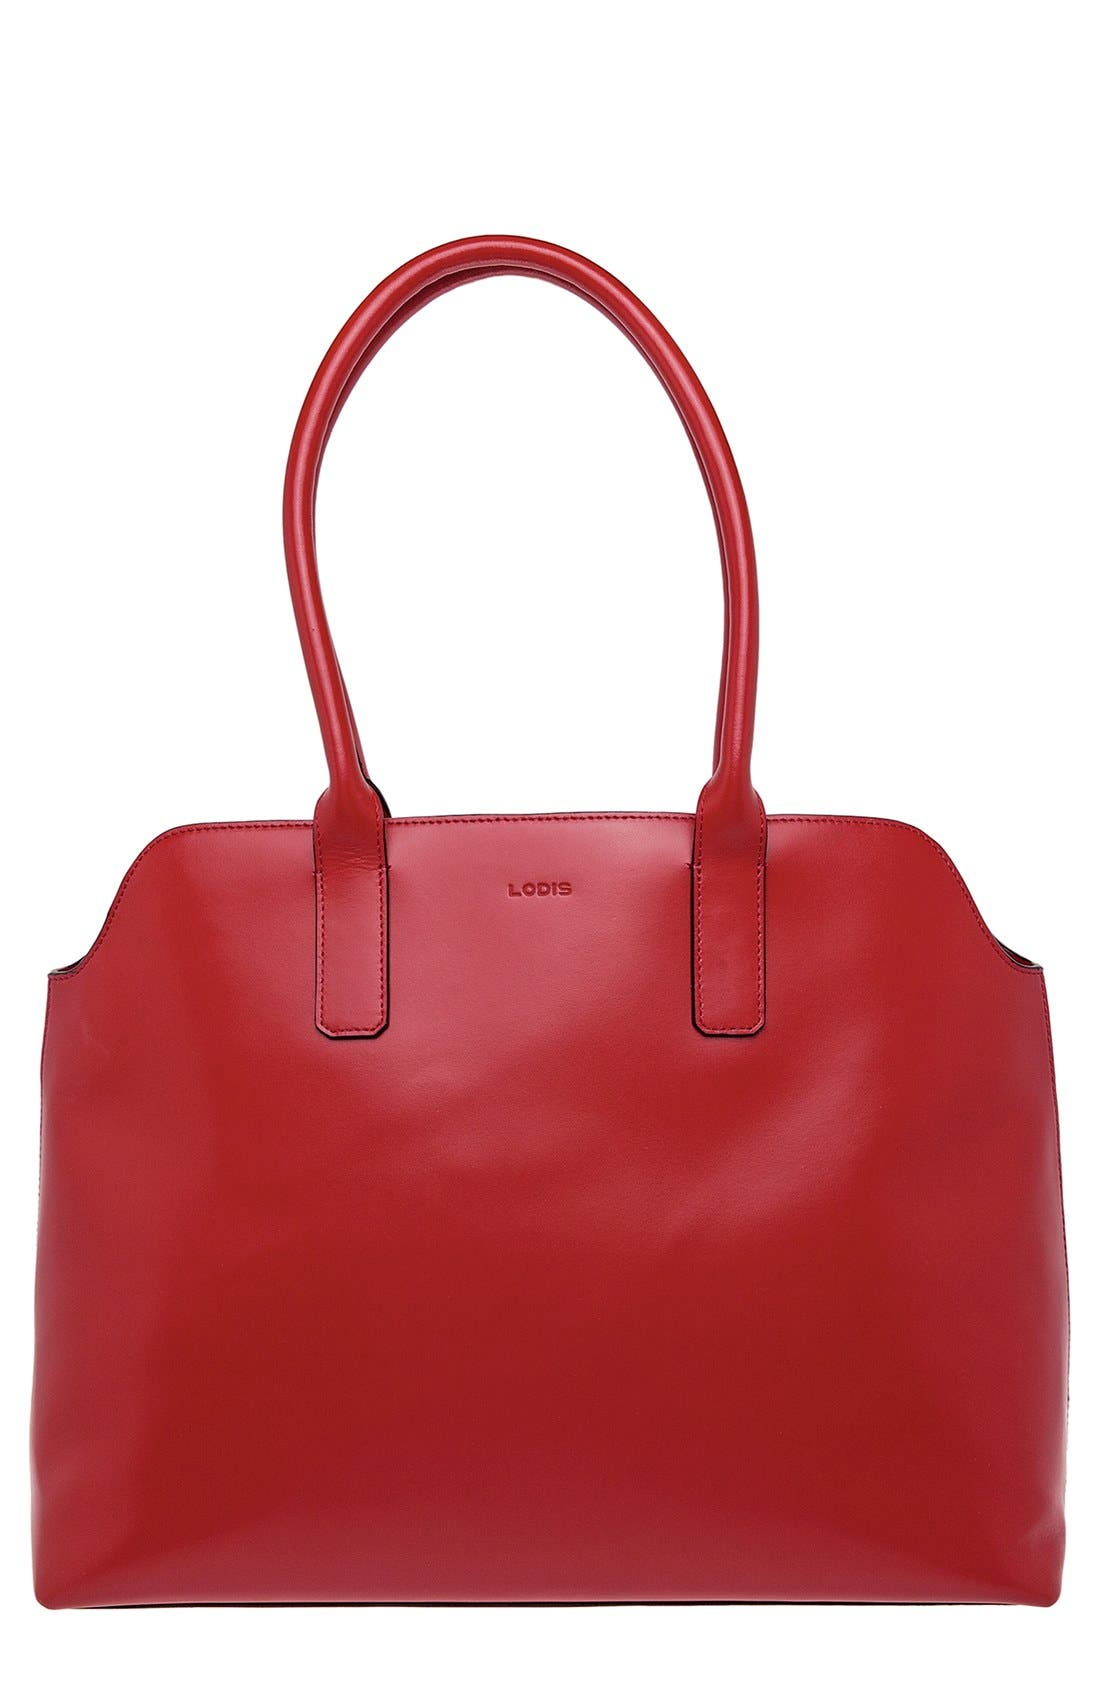 Alternate Image 1 Selected - Lodis 'Audrey Collection - Ivana' Tote